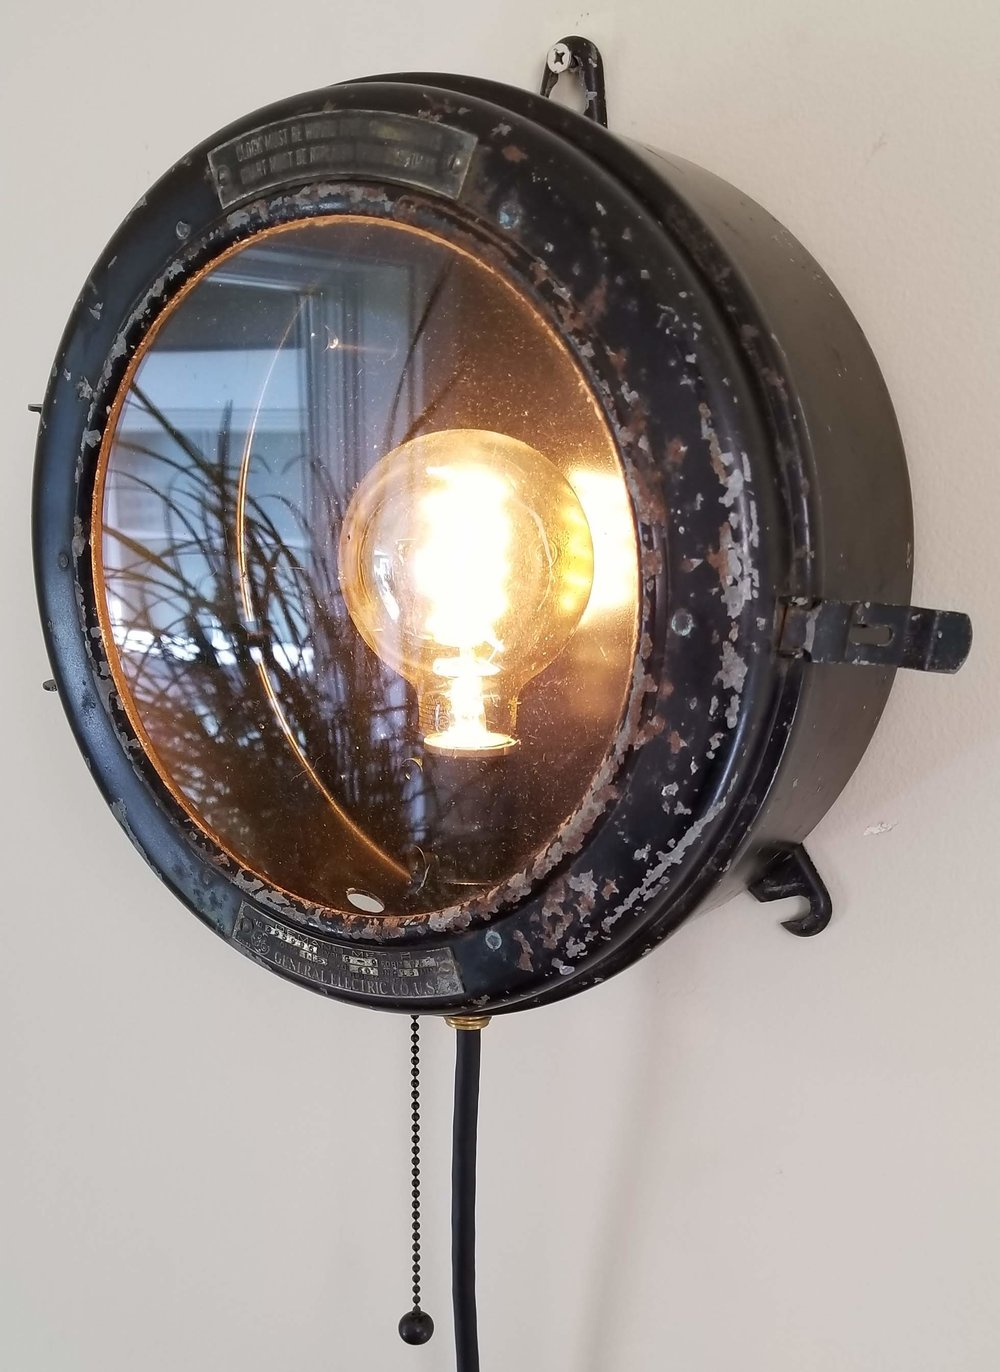 """SOLD.  This old BCM meter from the 1940's has been gutted and refitted to function as a wall fixture with a great industrial feel.  Diameter: 10"""" Depth: 5"""""""